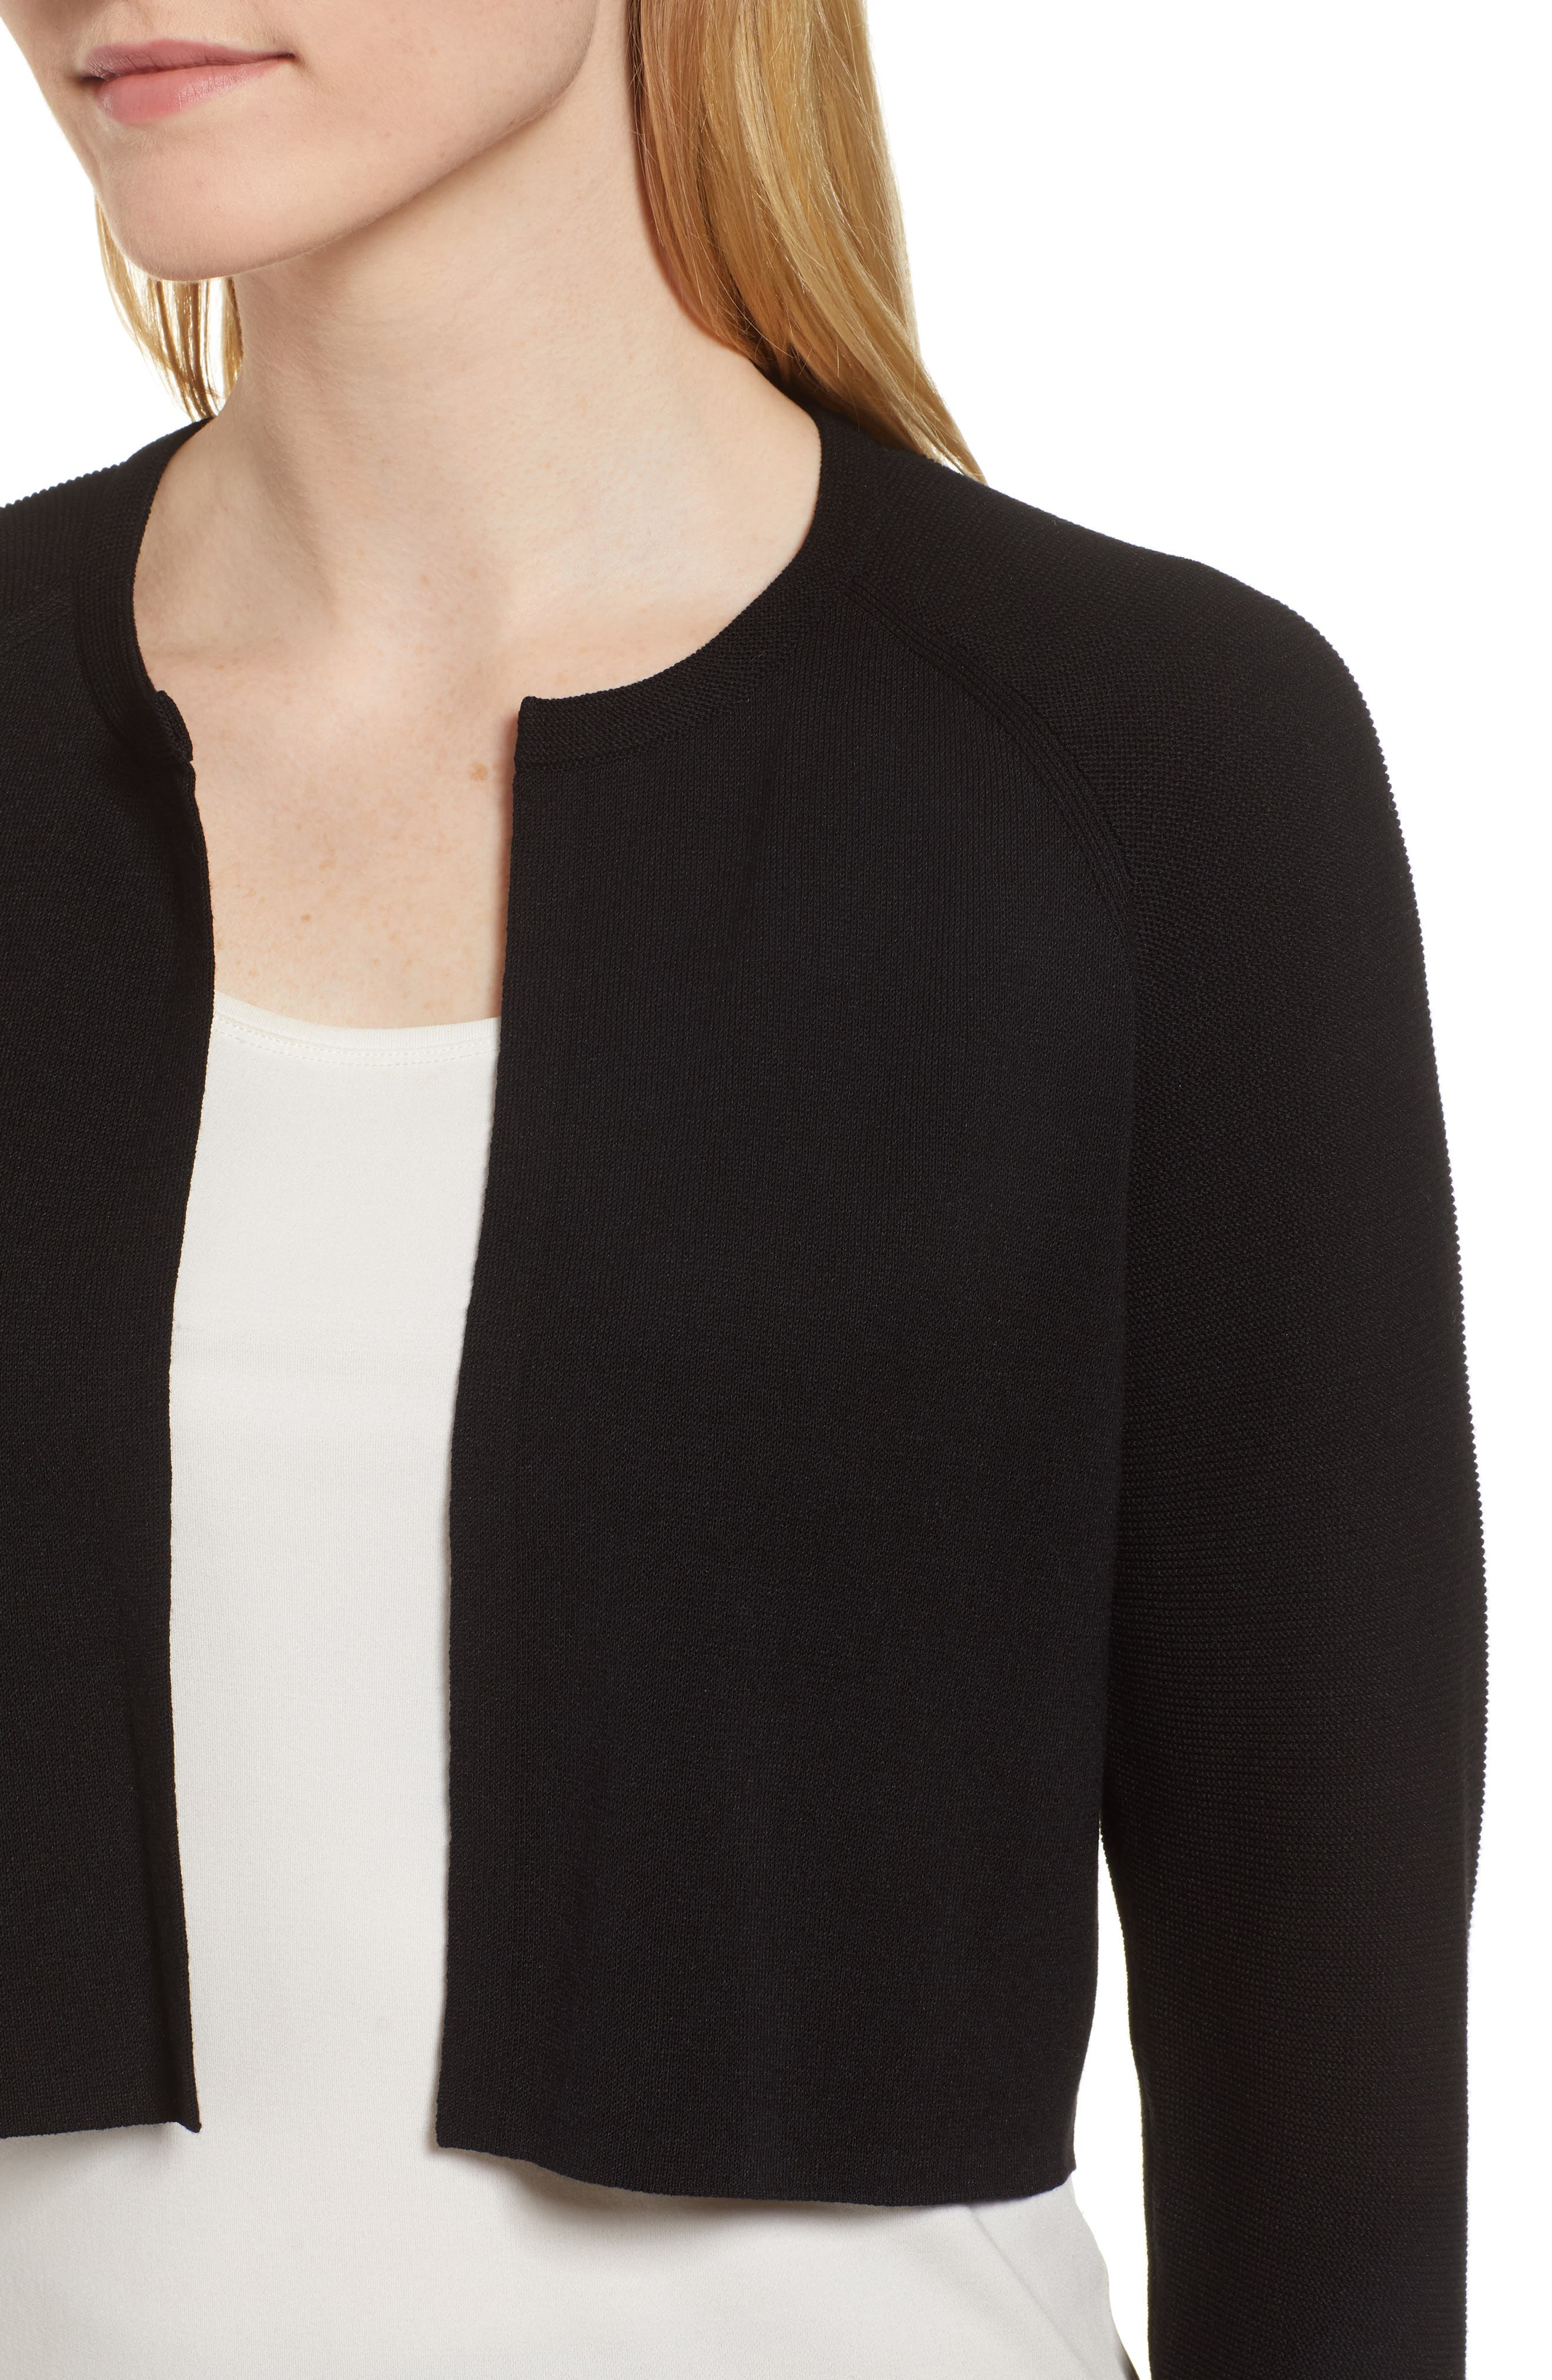 Fatildi Bolero Cardigan,                             Alternate thumbnail 4, color,                             BLACK